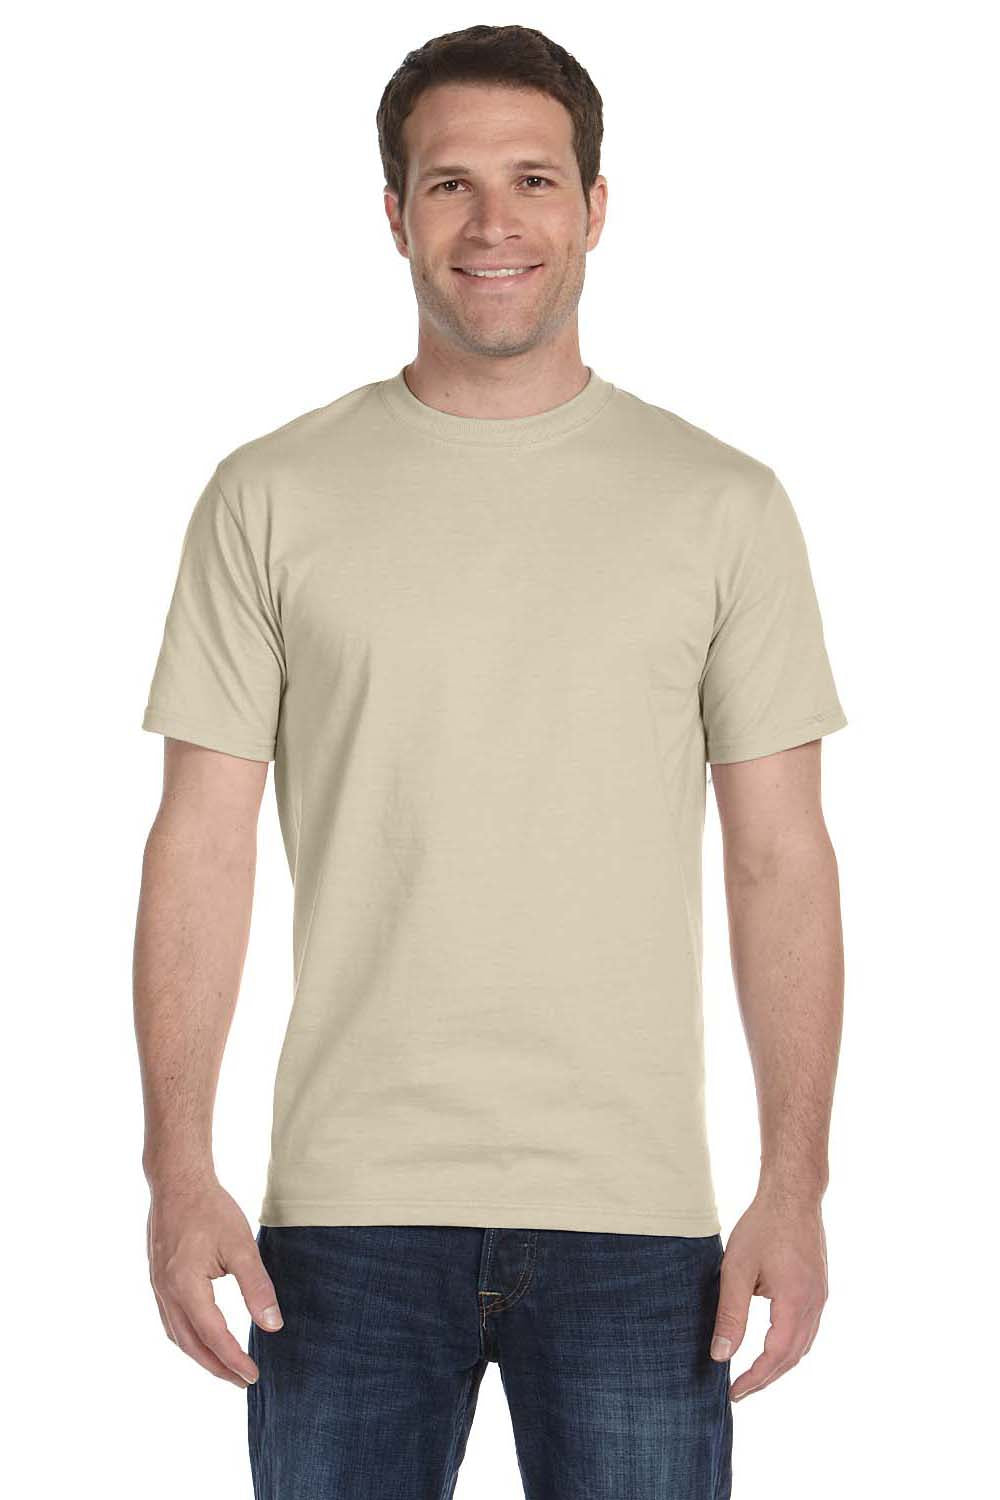 Hanes 5180 Mens Beefy-T Short Sleeve Crewneck T-Shirt Sand Brown Front